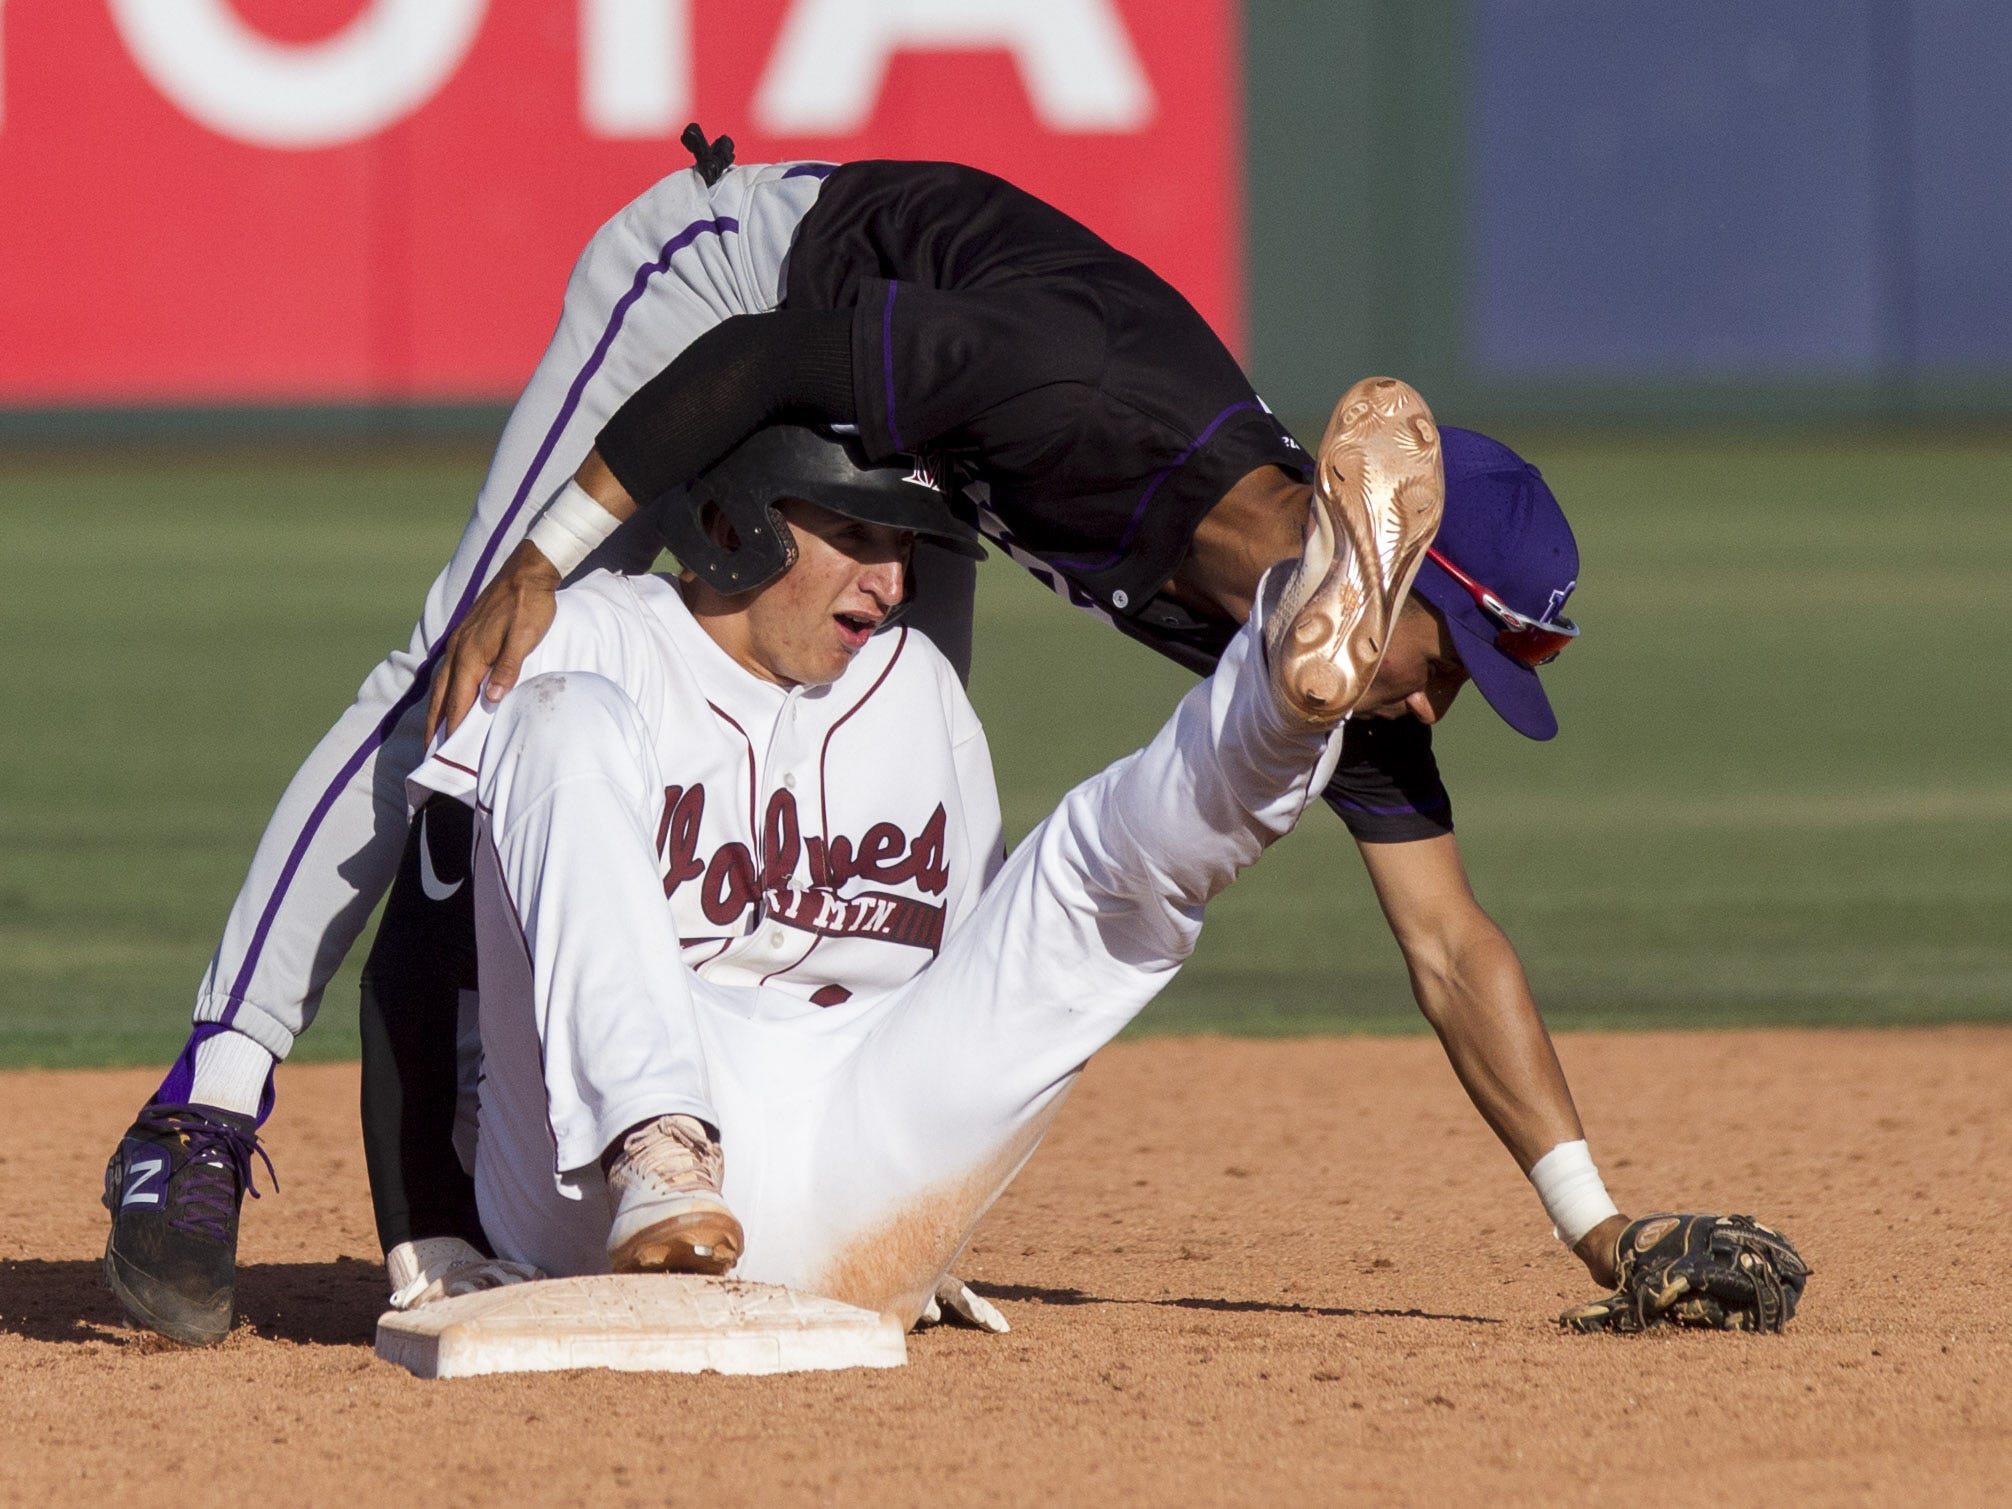 Sunrise Mountain's Andy Moreno catches himself after tripping over Desert Mountain's Zack Stewart at second base during the 5A state baseball second round at Diablo Stadium in Tempe, Arizona, April 29, 2019.